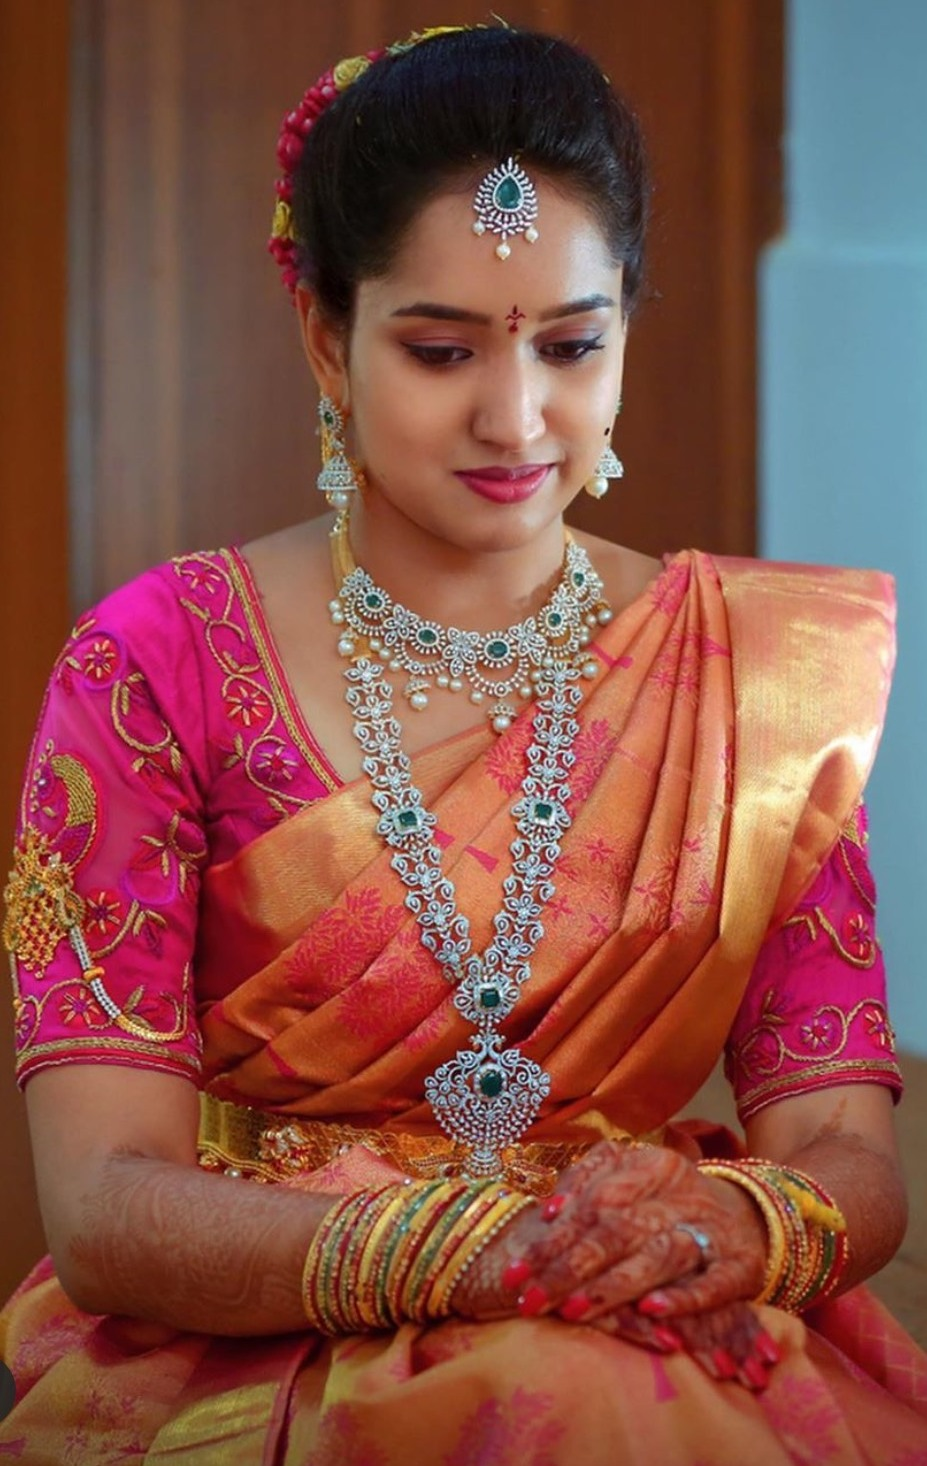 Bride in Jhumka Pattern Diamond Haram - Jewellery Designs